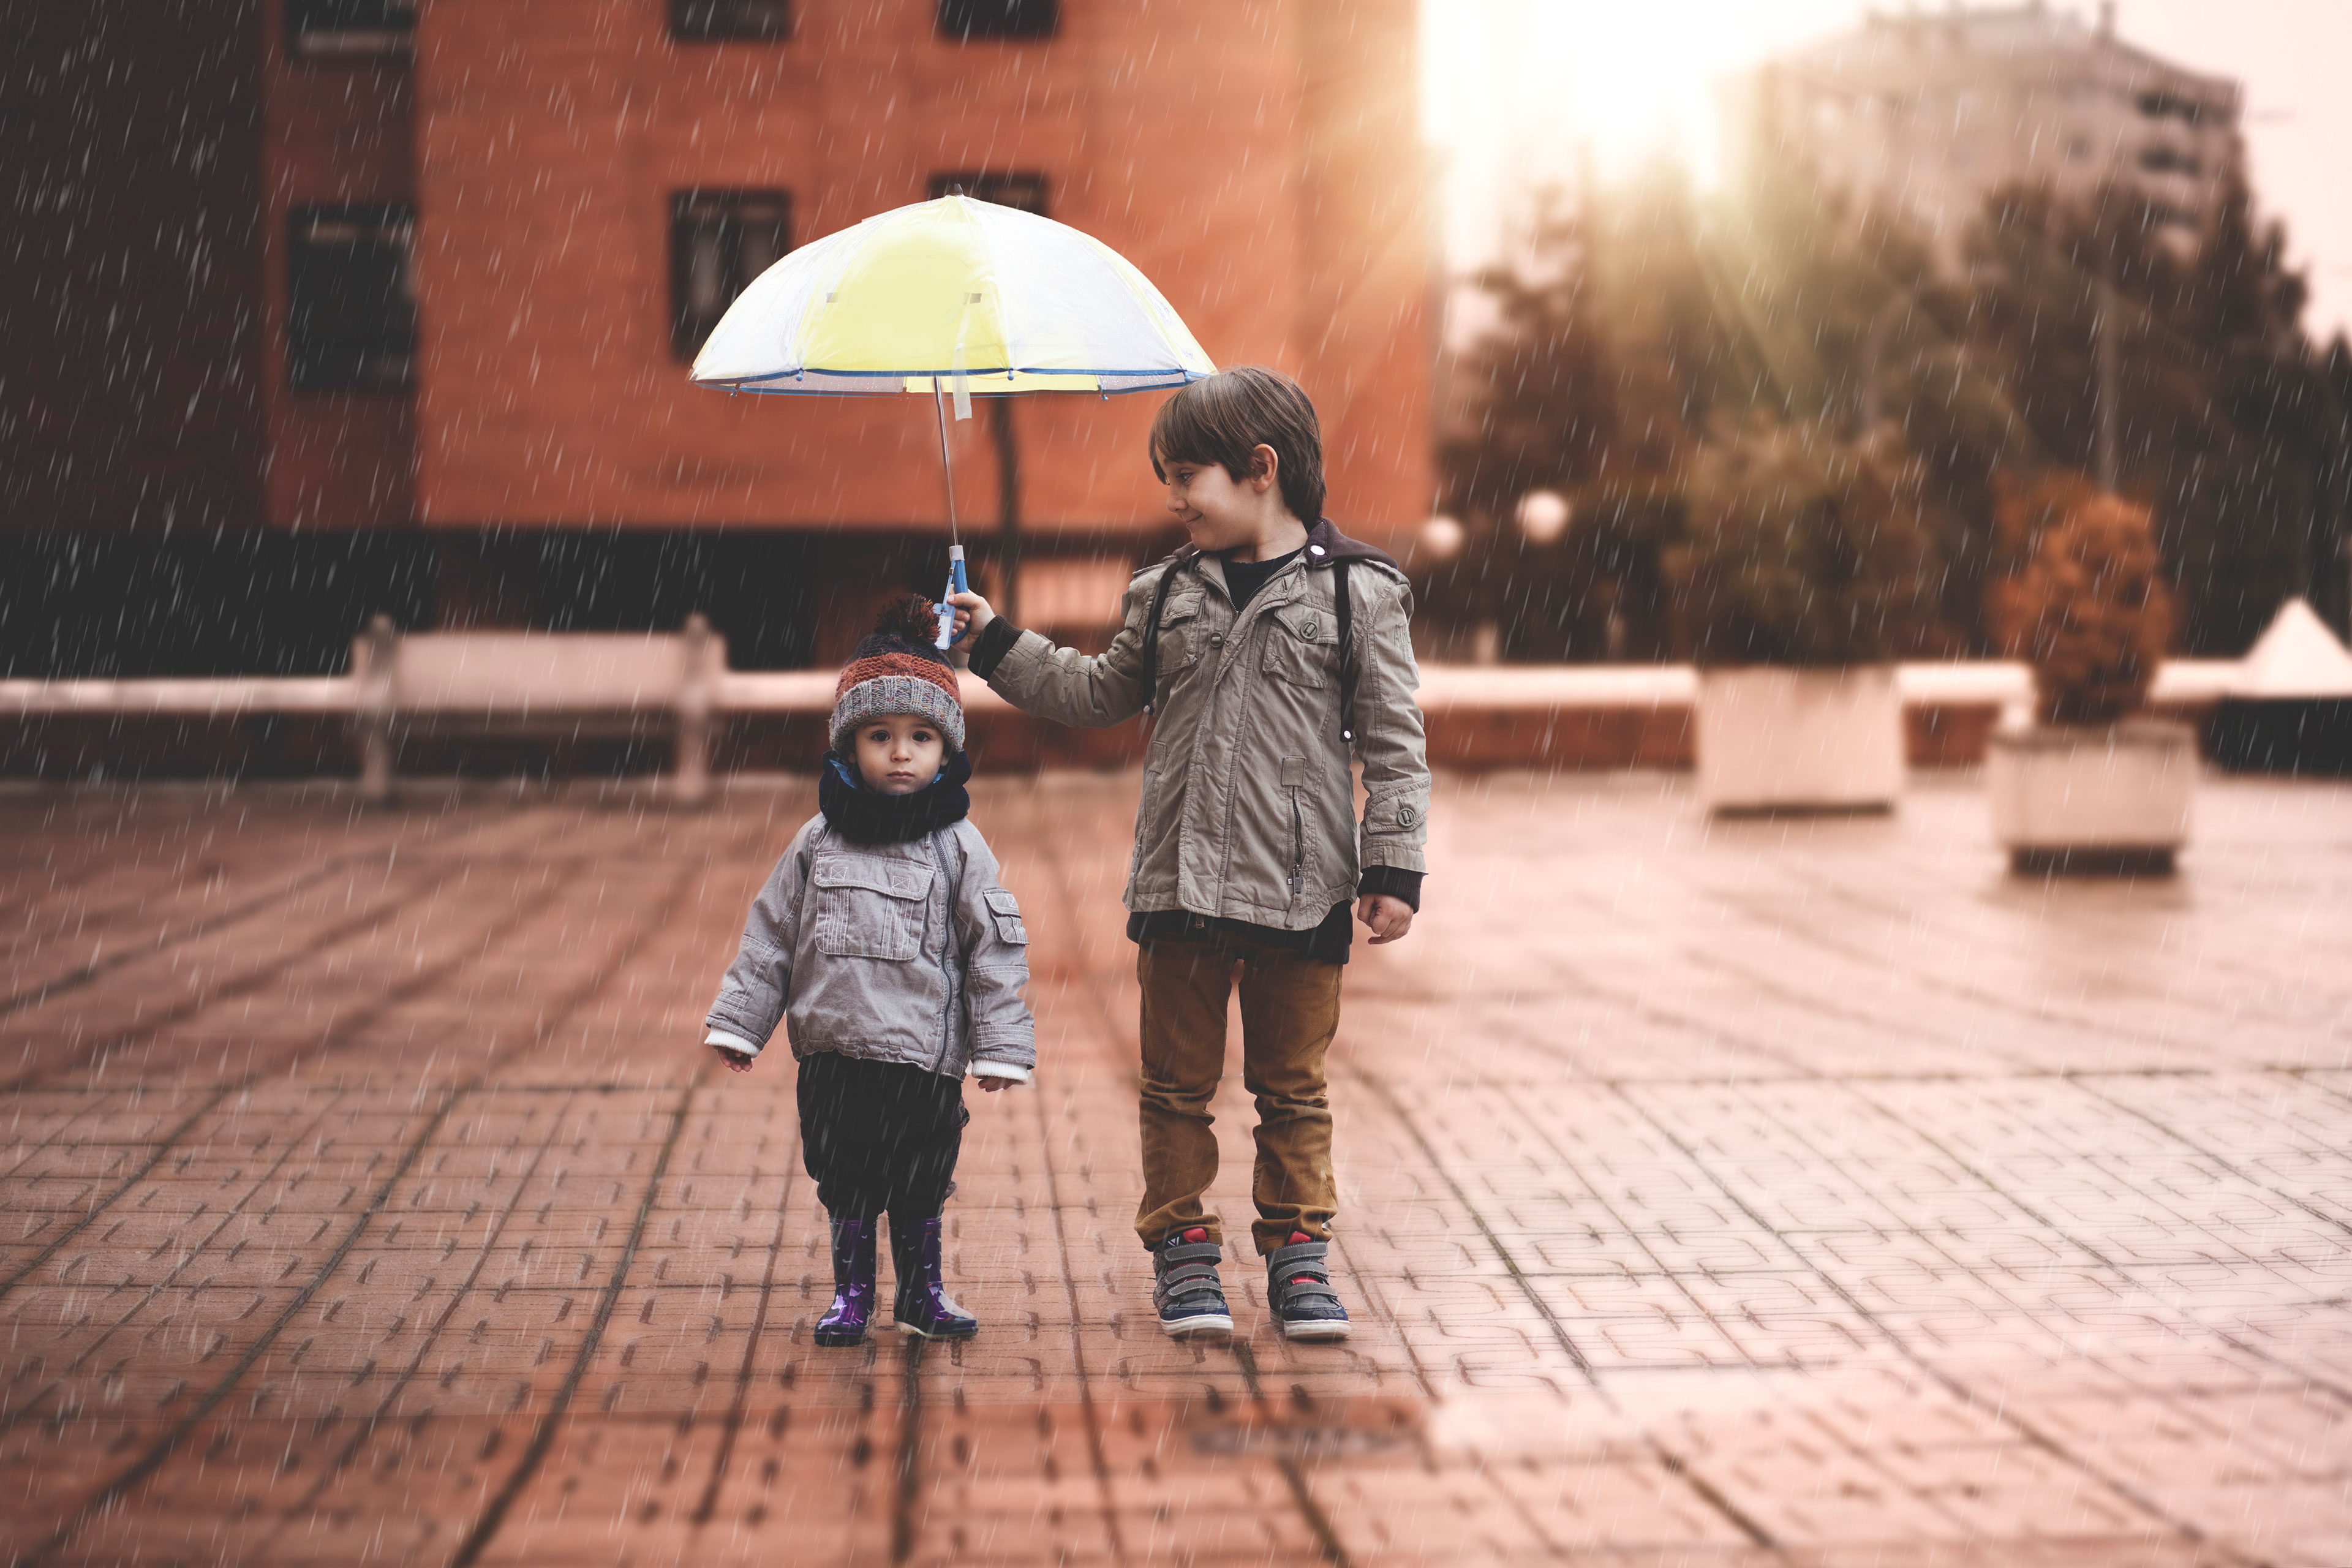 EY - Two small boys under an umbrella in the rain